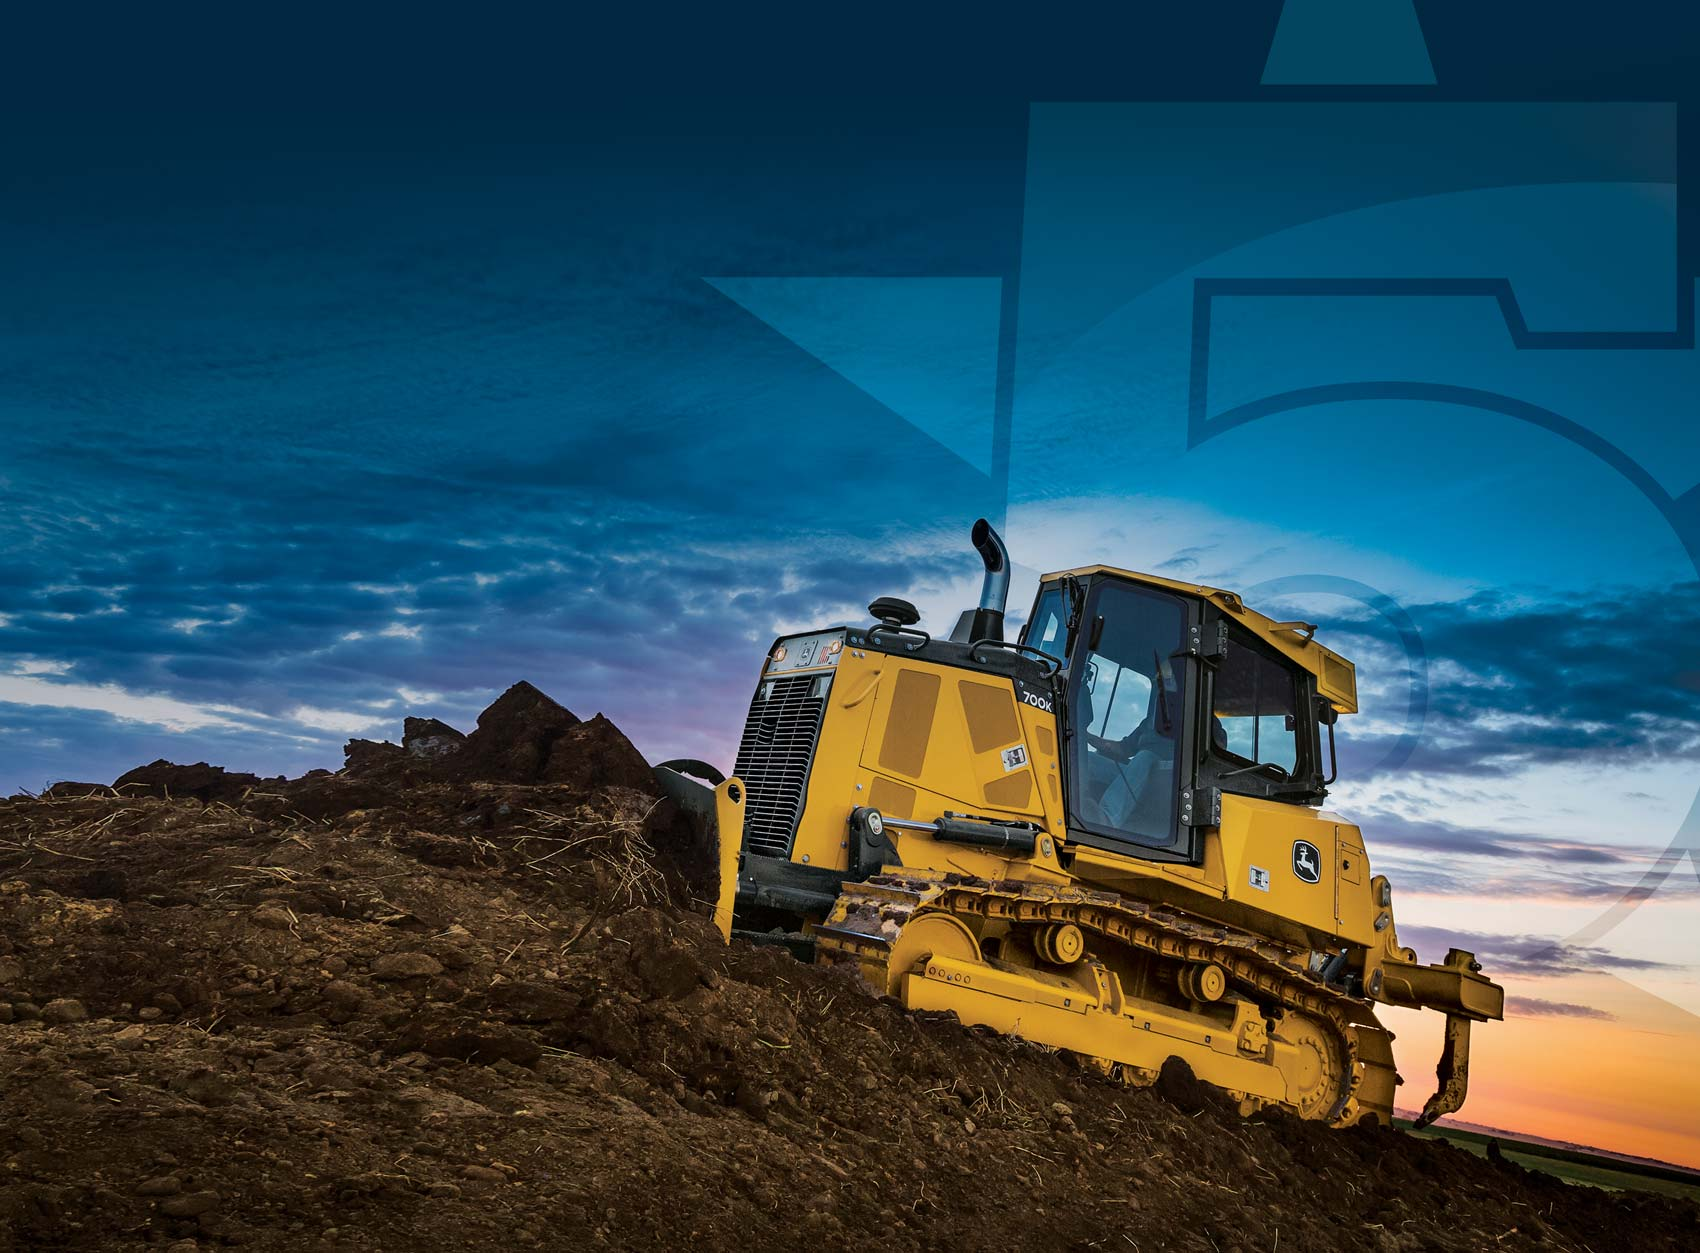 John Deere heavy equipment being used to push earth uphill at sunset